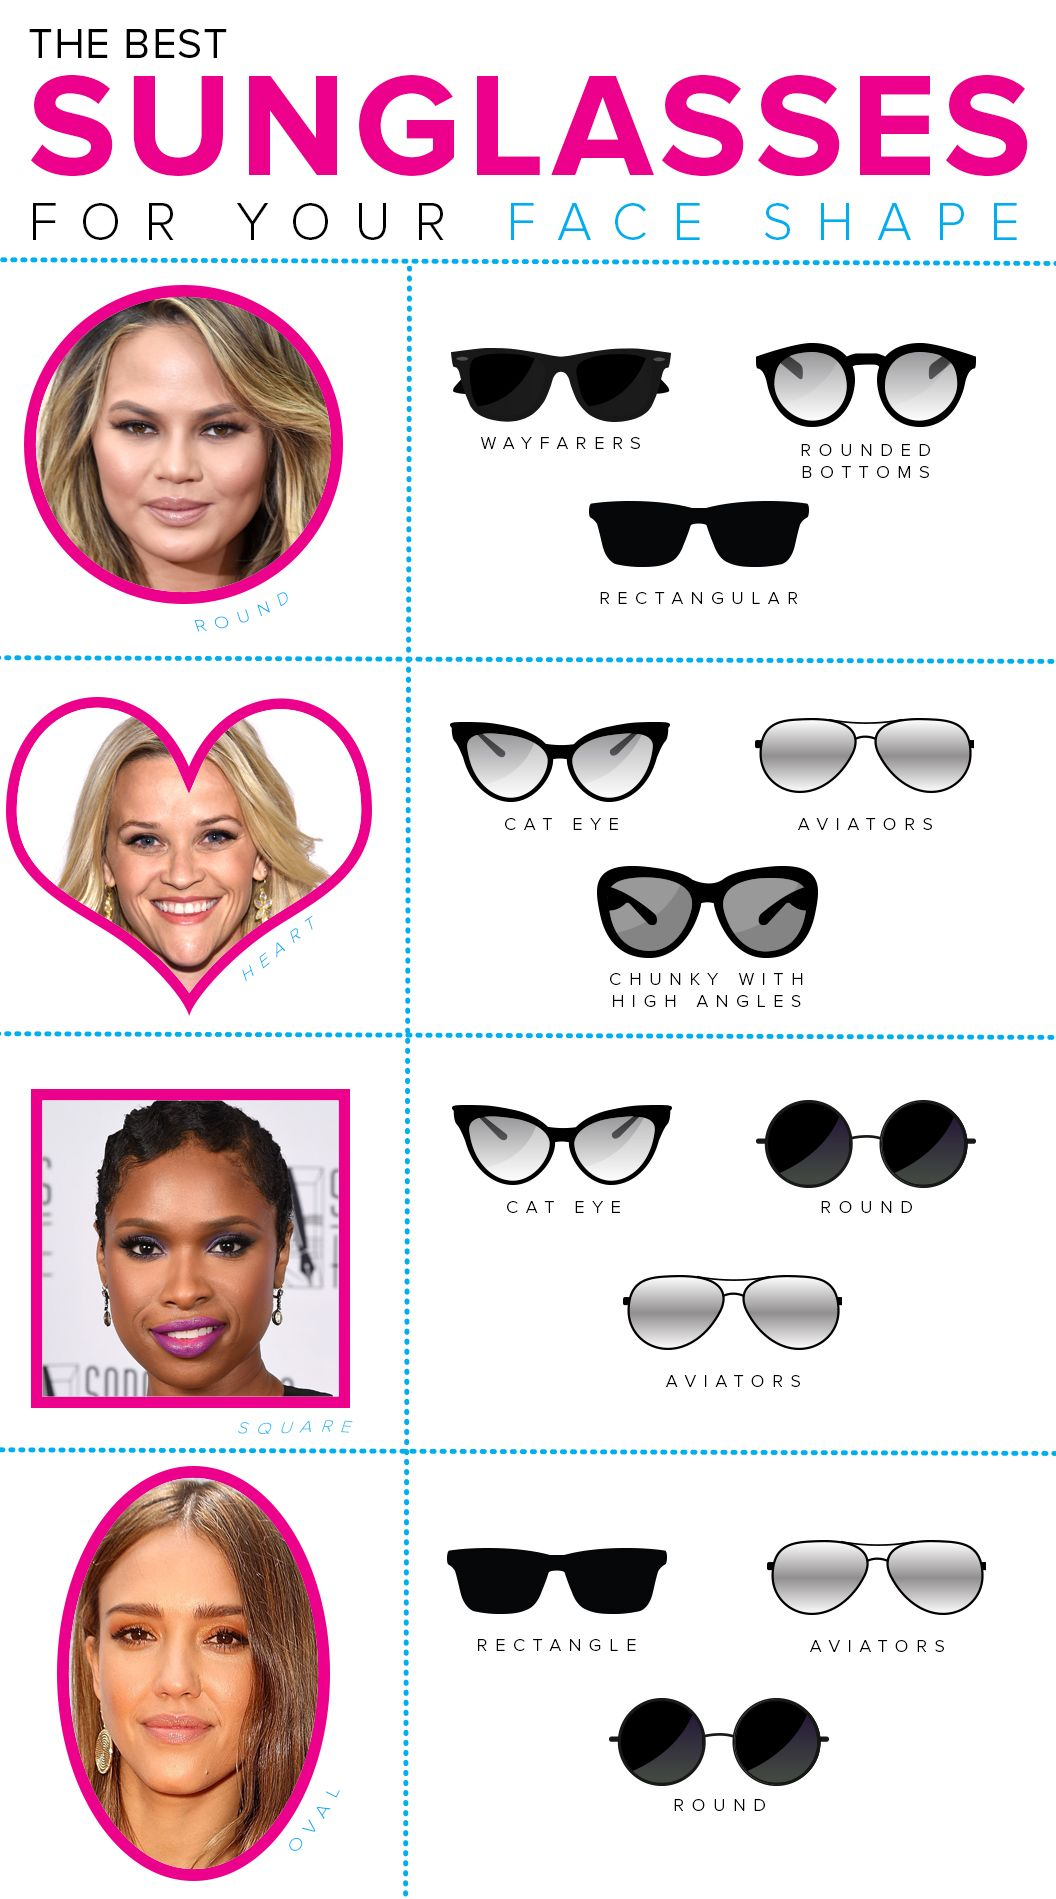 yes, you can rock new shades! 15 sunglasses styles to fit